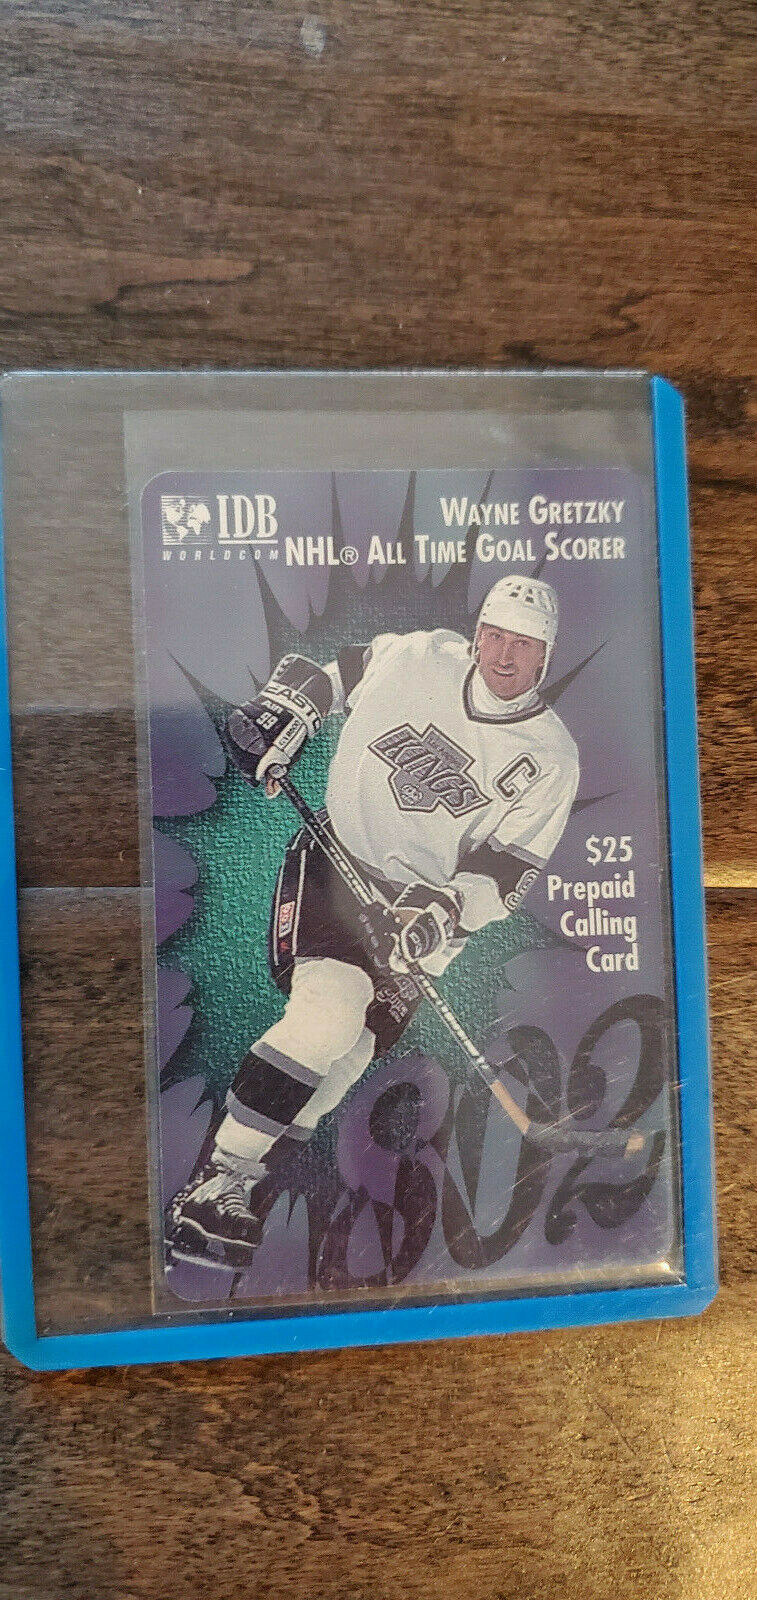 Primary image for 1994 IDB WAYNE GRETZKY NHL ALL TIME GOAL SCORER 802 $25 PHONE CARD KINGS OILERS